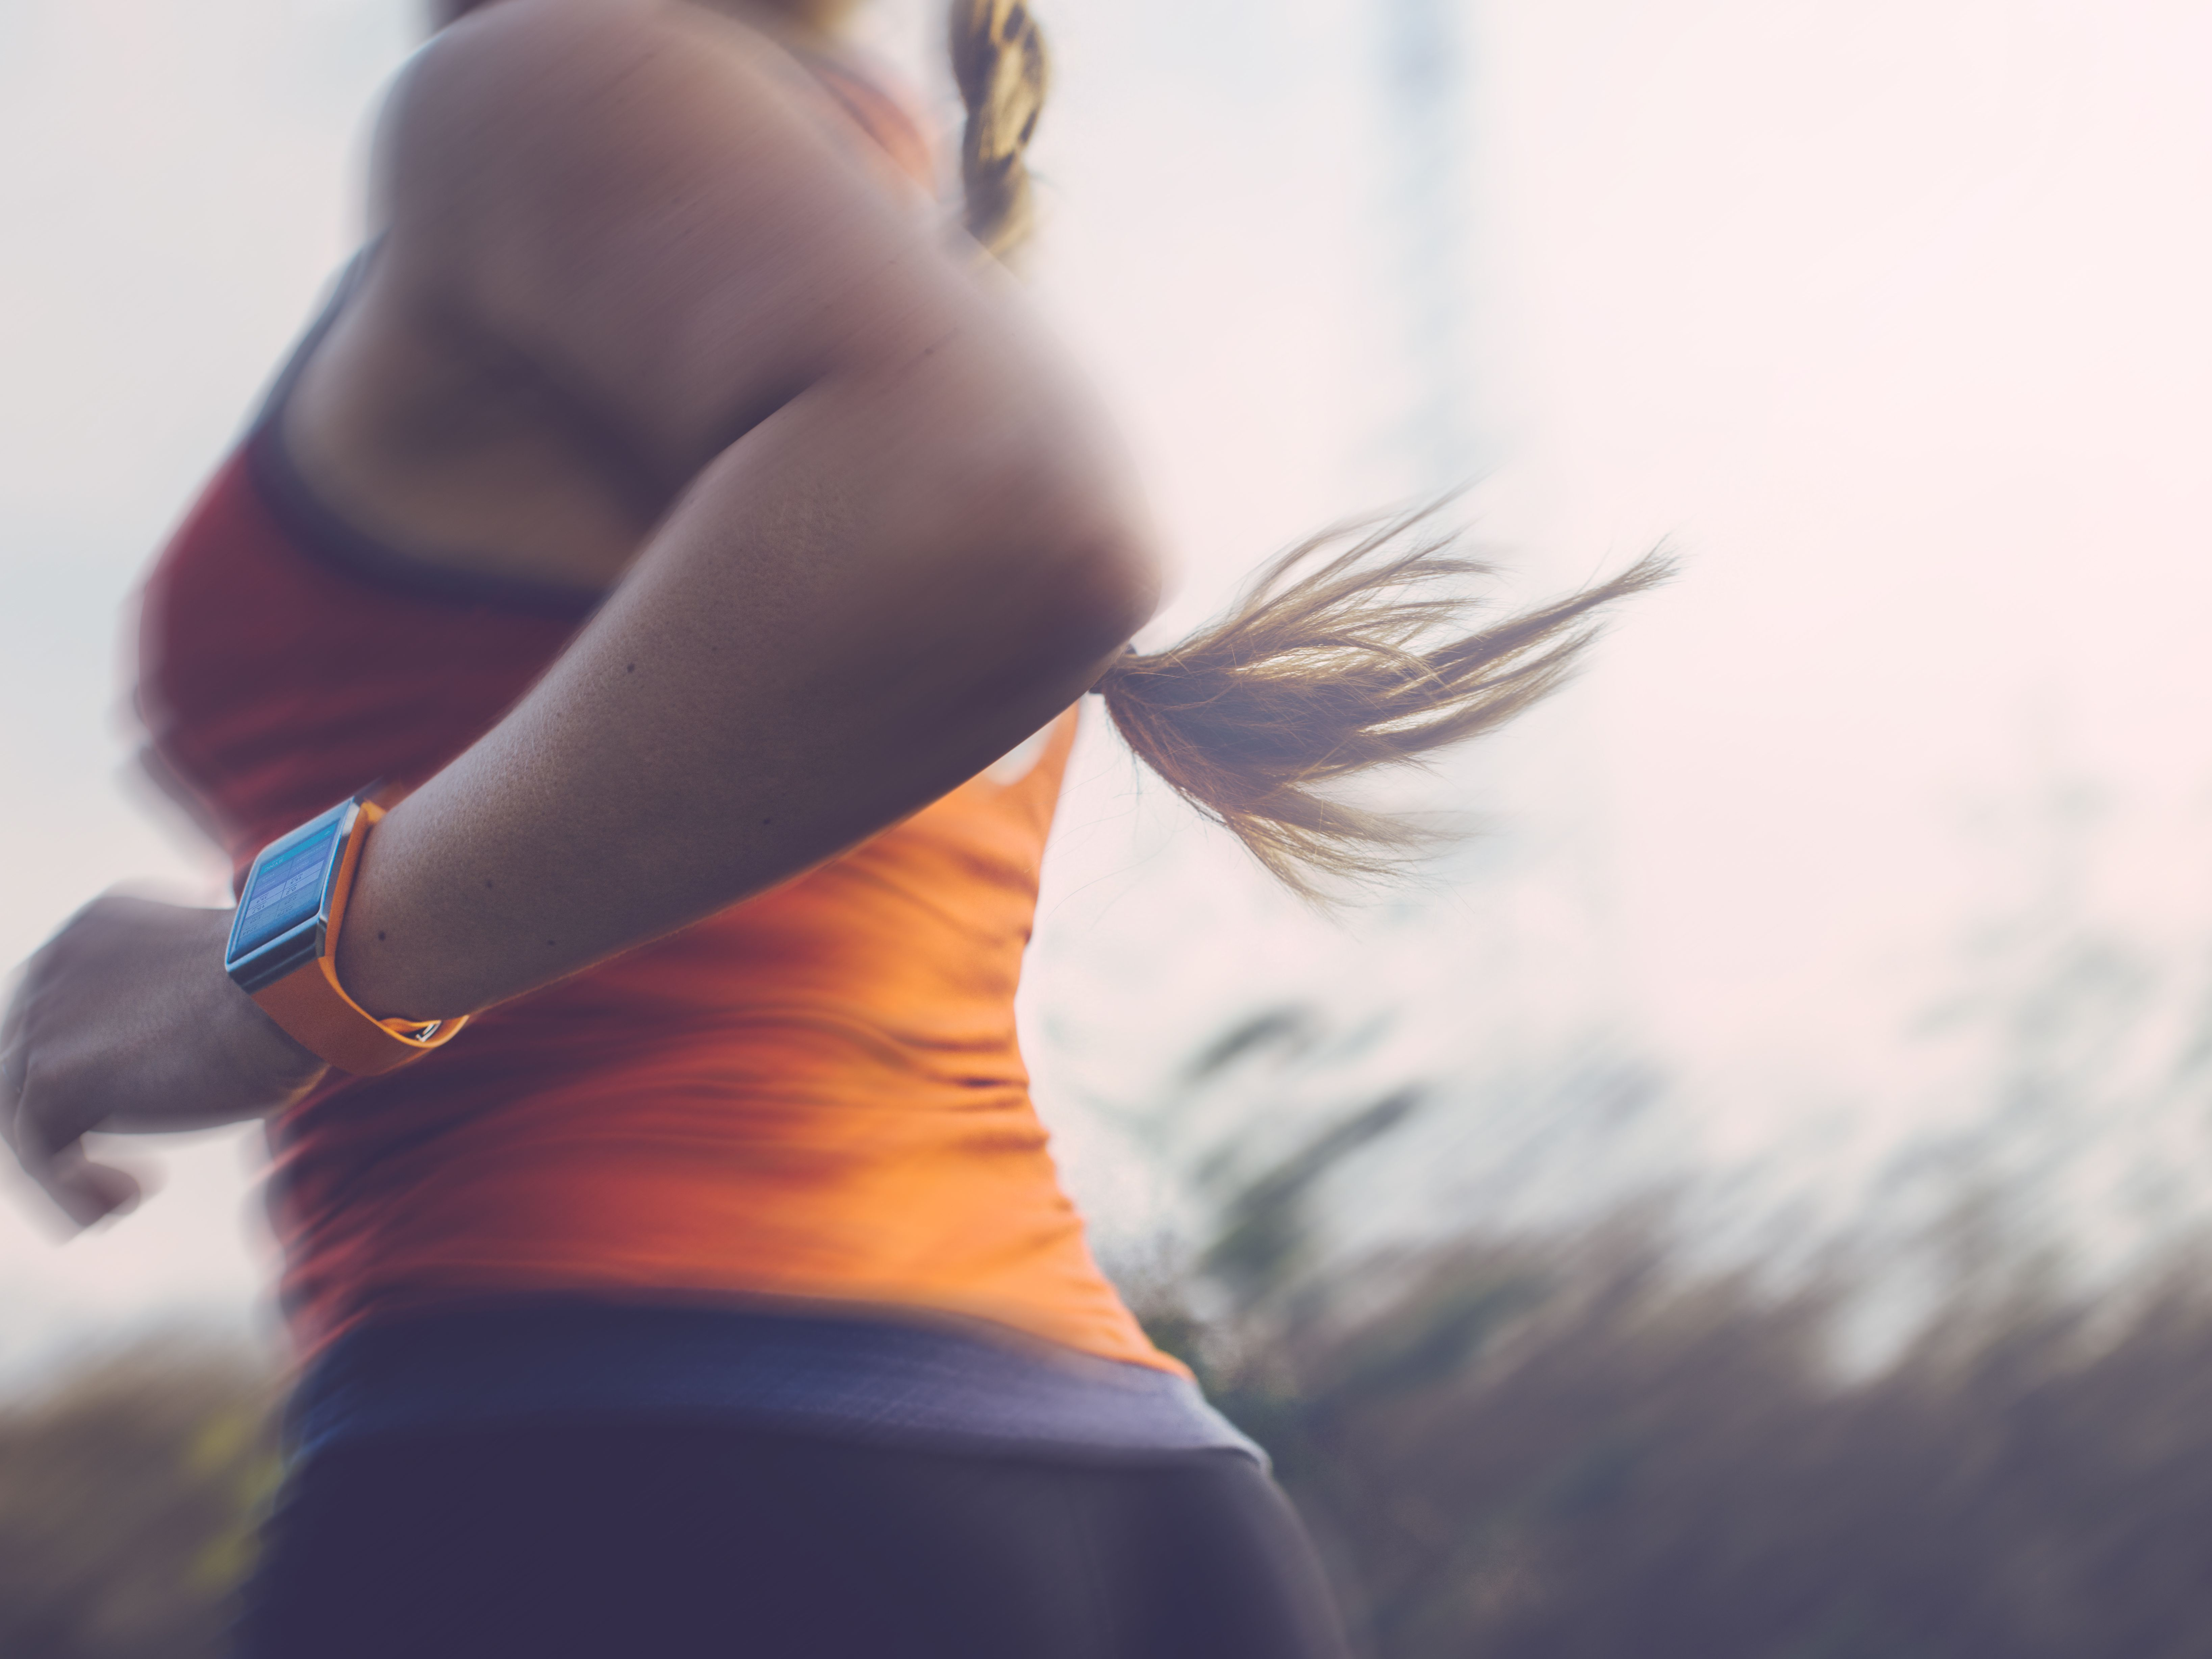 do you have to exercise everyday to lose weight